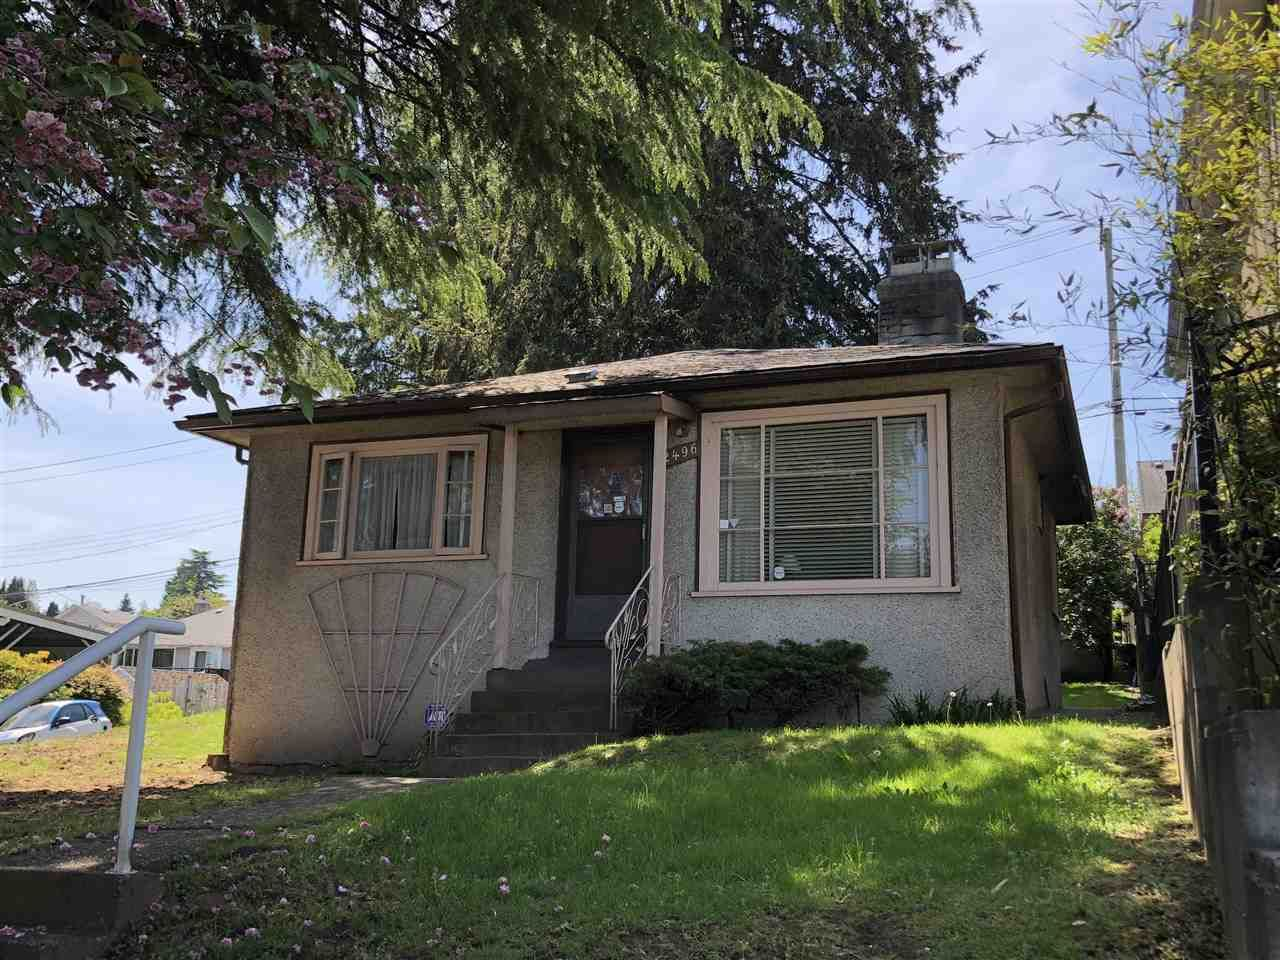 Main Photo: 2496 E 27TH Avenue in Vancouver: Collingwood VE House for sale (Vancouver East)  : MLS®# R2270492